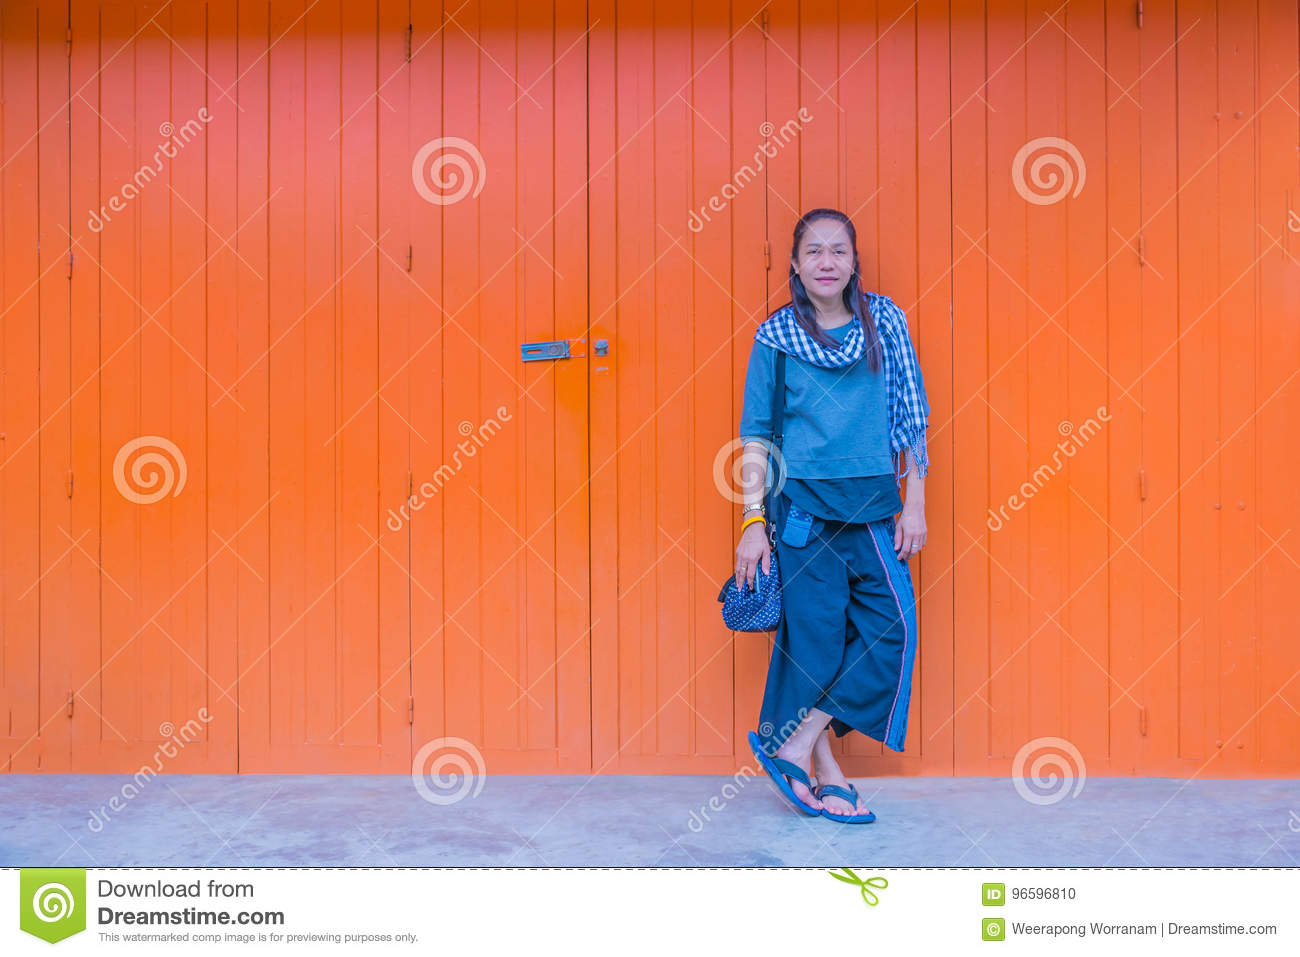 Abstract soft focus the woman standing in front of the old wooden wall with the natural light.